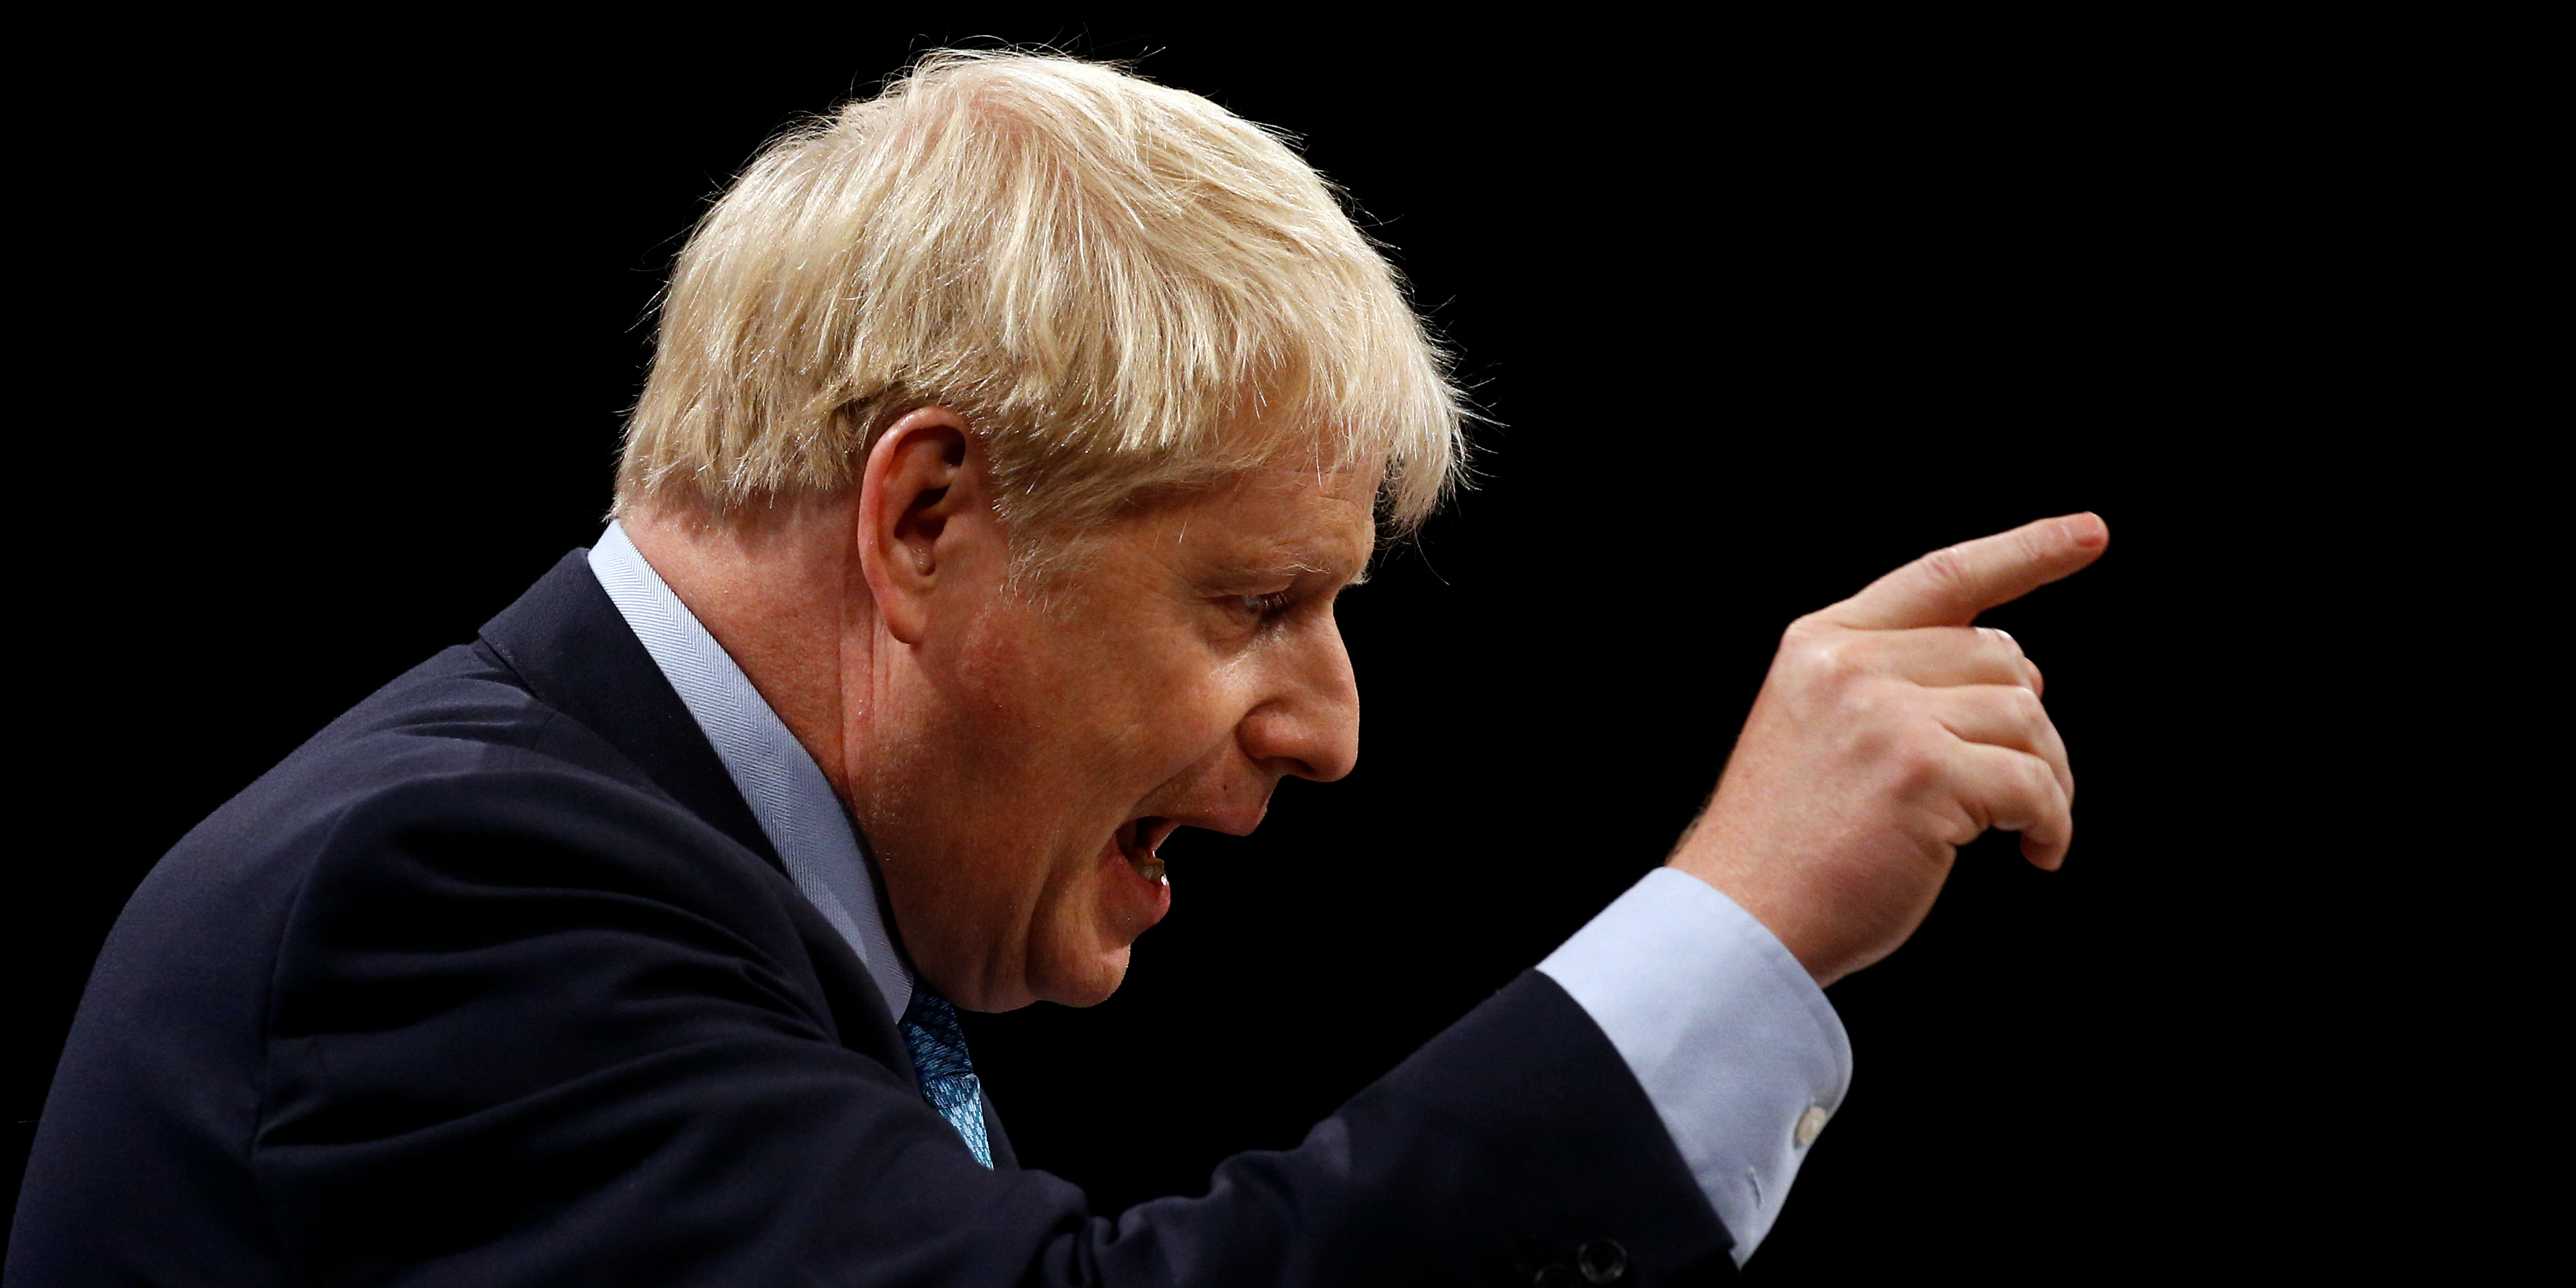 boris-johnson-maintient-le-cap-du-31-octobre 20191021075728